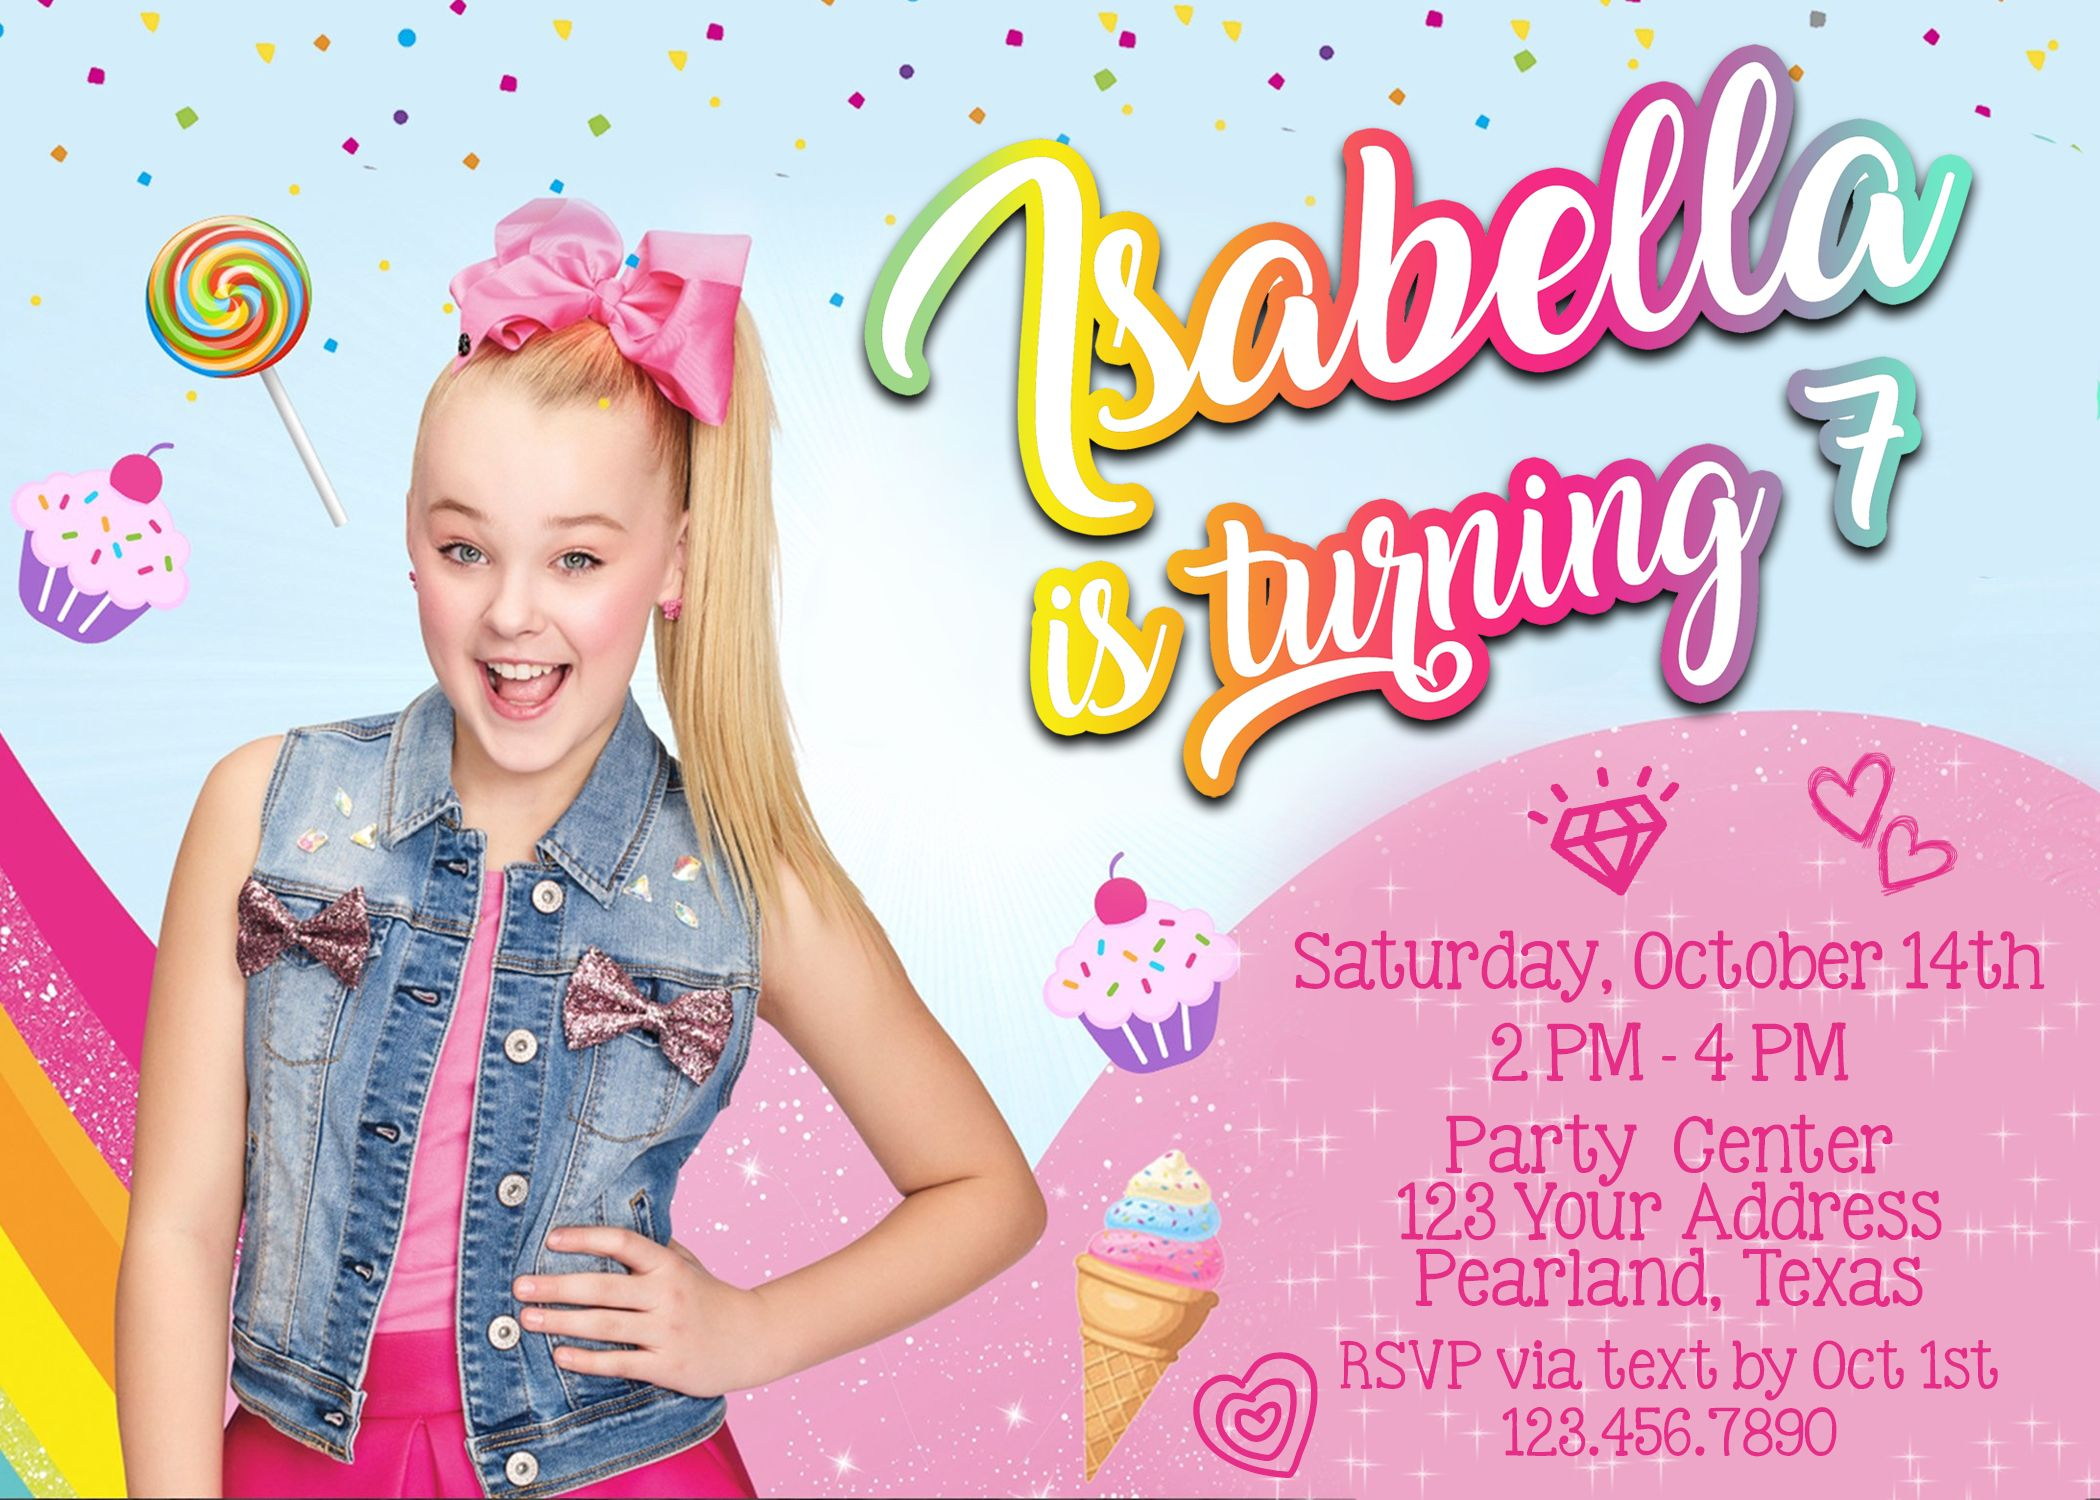 Jojo siwa birthday party invitation 5x7 4x6 5usd addisons 10th jojo siwa birthday party invitation 5x7 4x6 5usd stopboris Gallery